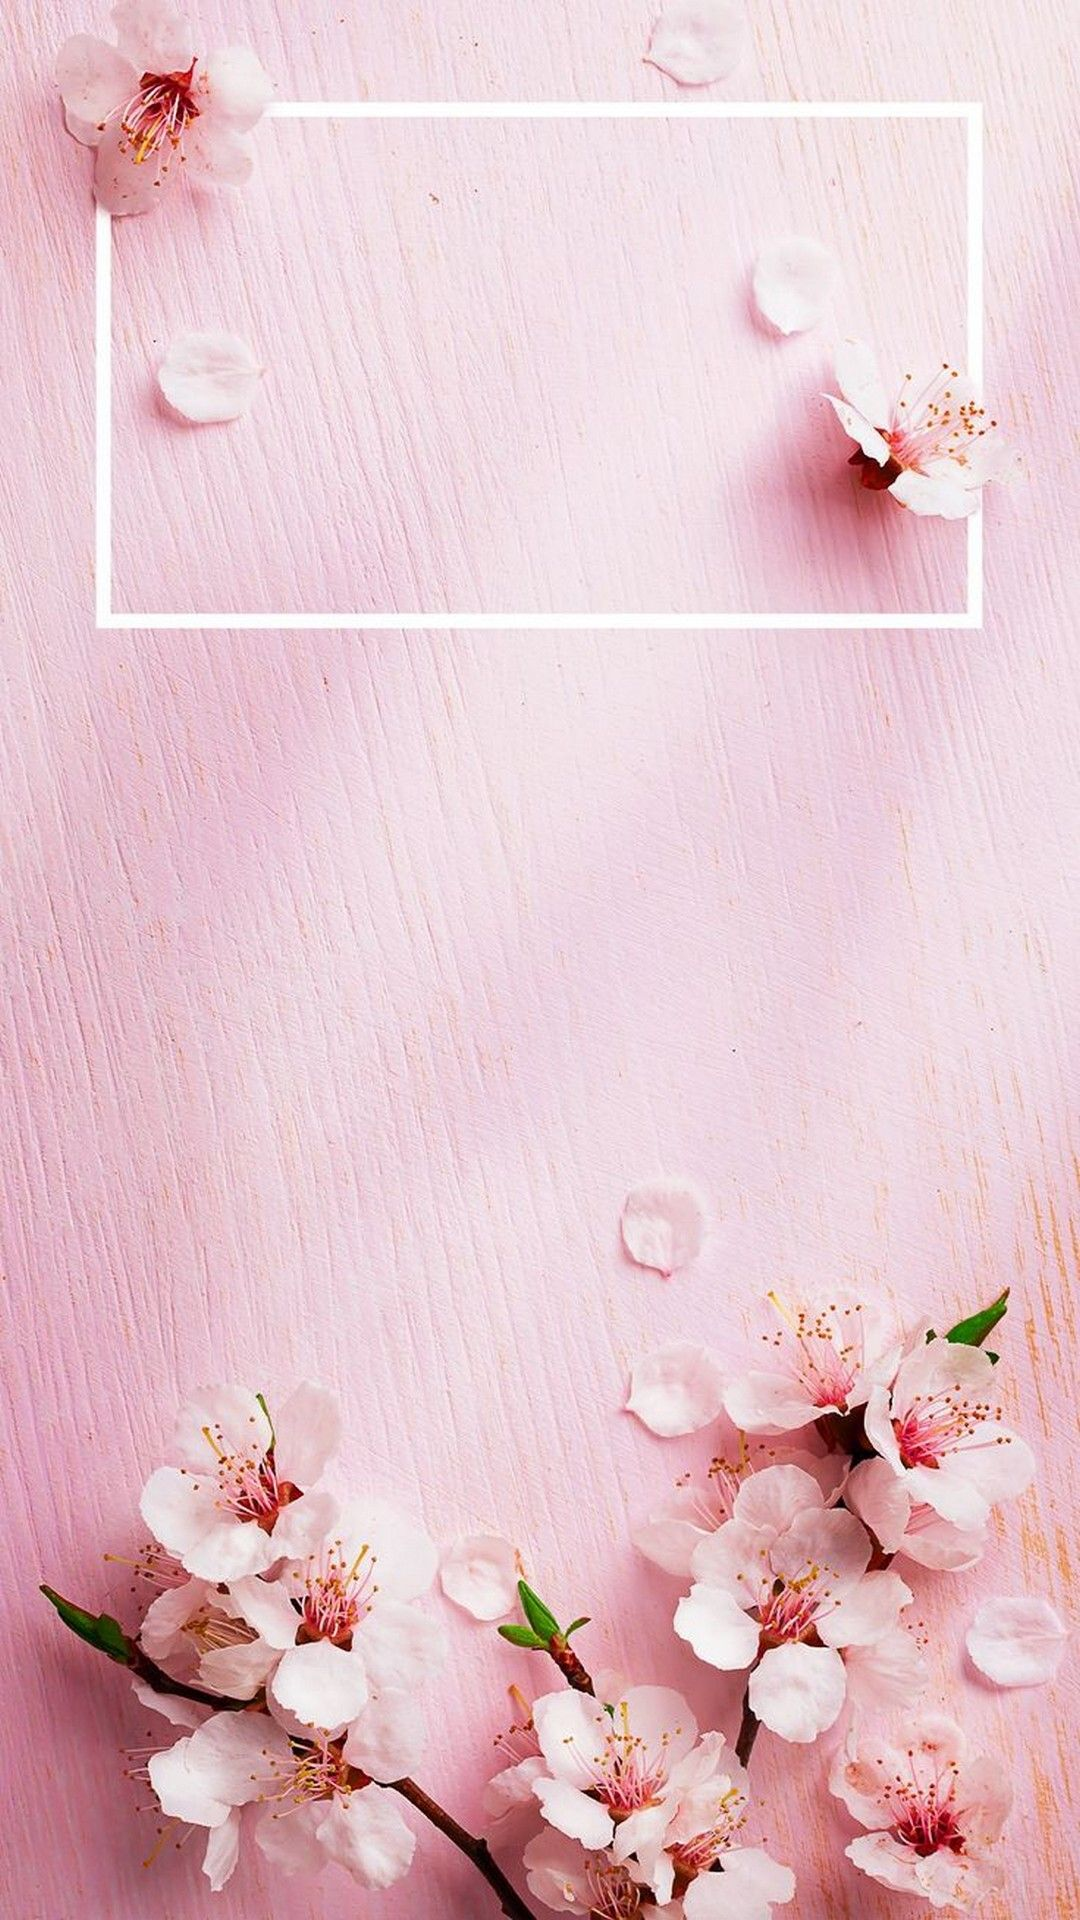 Iphone X Wallpaper Rose Gold Lock Screen Best Iphone Wallpaper Iphone Spring Wallpaper Spring Wallpaper Rose Gold Wallpaper